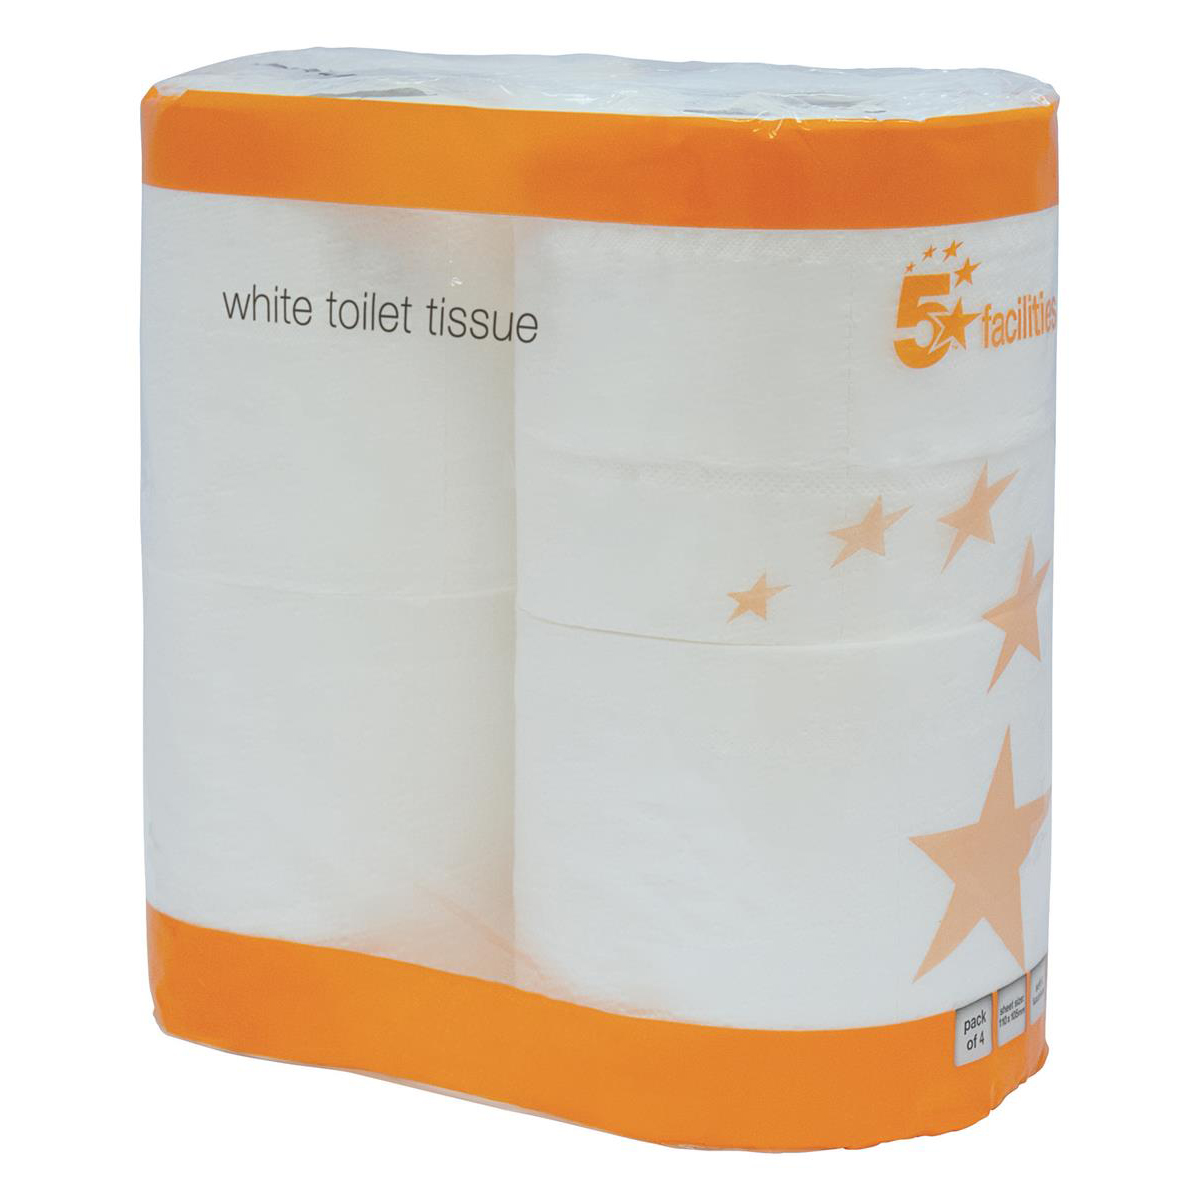 Toilet Tissue & Dispensers 5 Star Facilities Toilet Rolls 2-ply 102x92mm 4 Rolls of 320 Sheets Per Pack White Pack 9